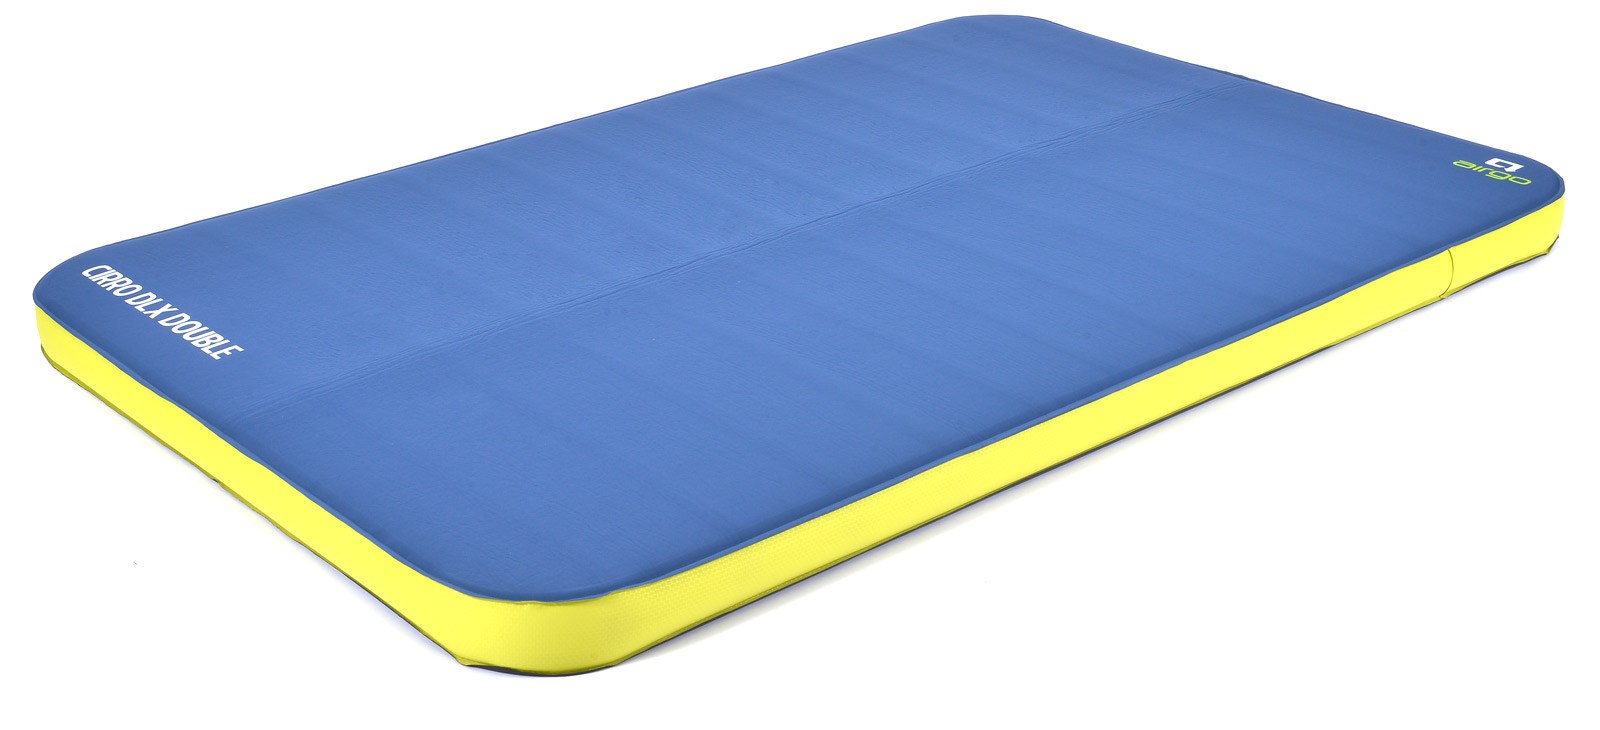 6b9262baa70 Airgo Cirro Double DLX Self-Inflating Mat